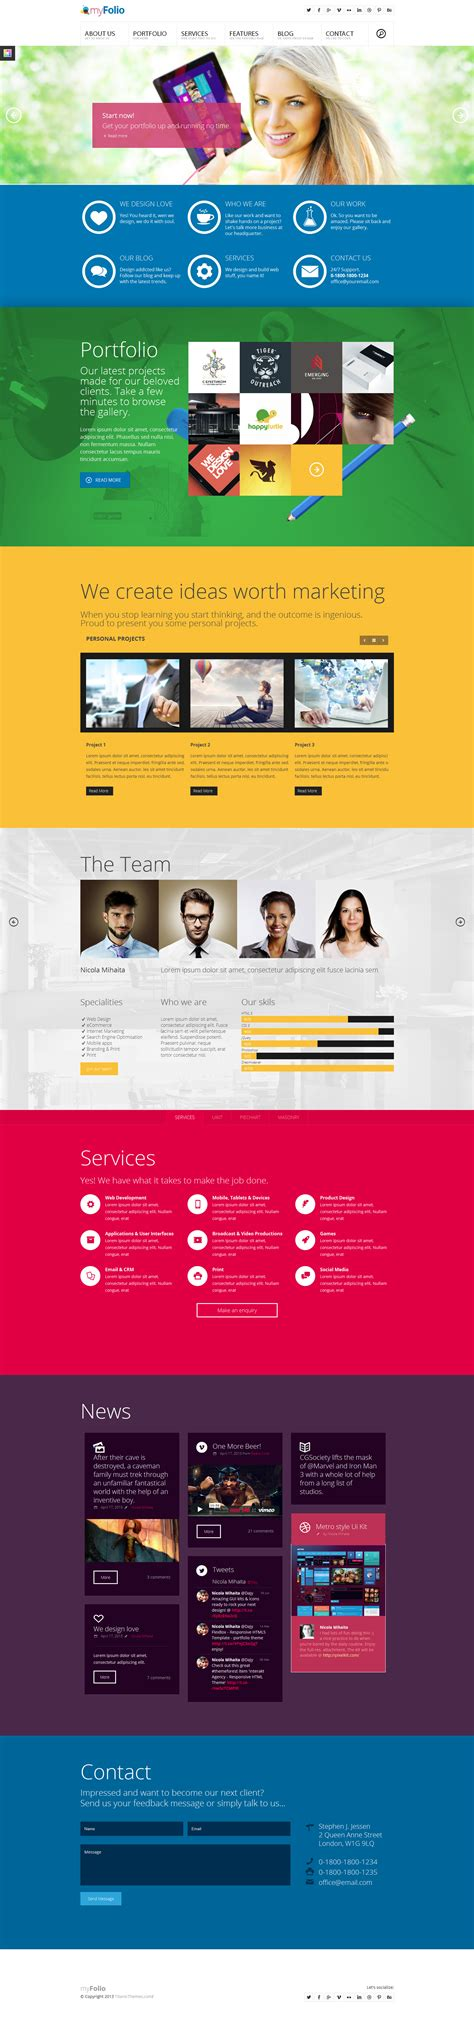 single page parallax template myfolio parallax onepage html5 template by dajydesigns